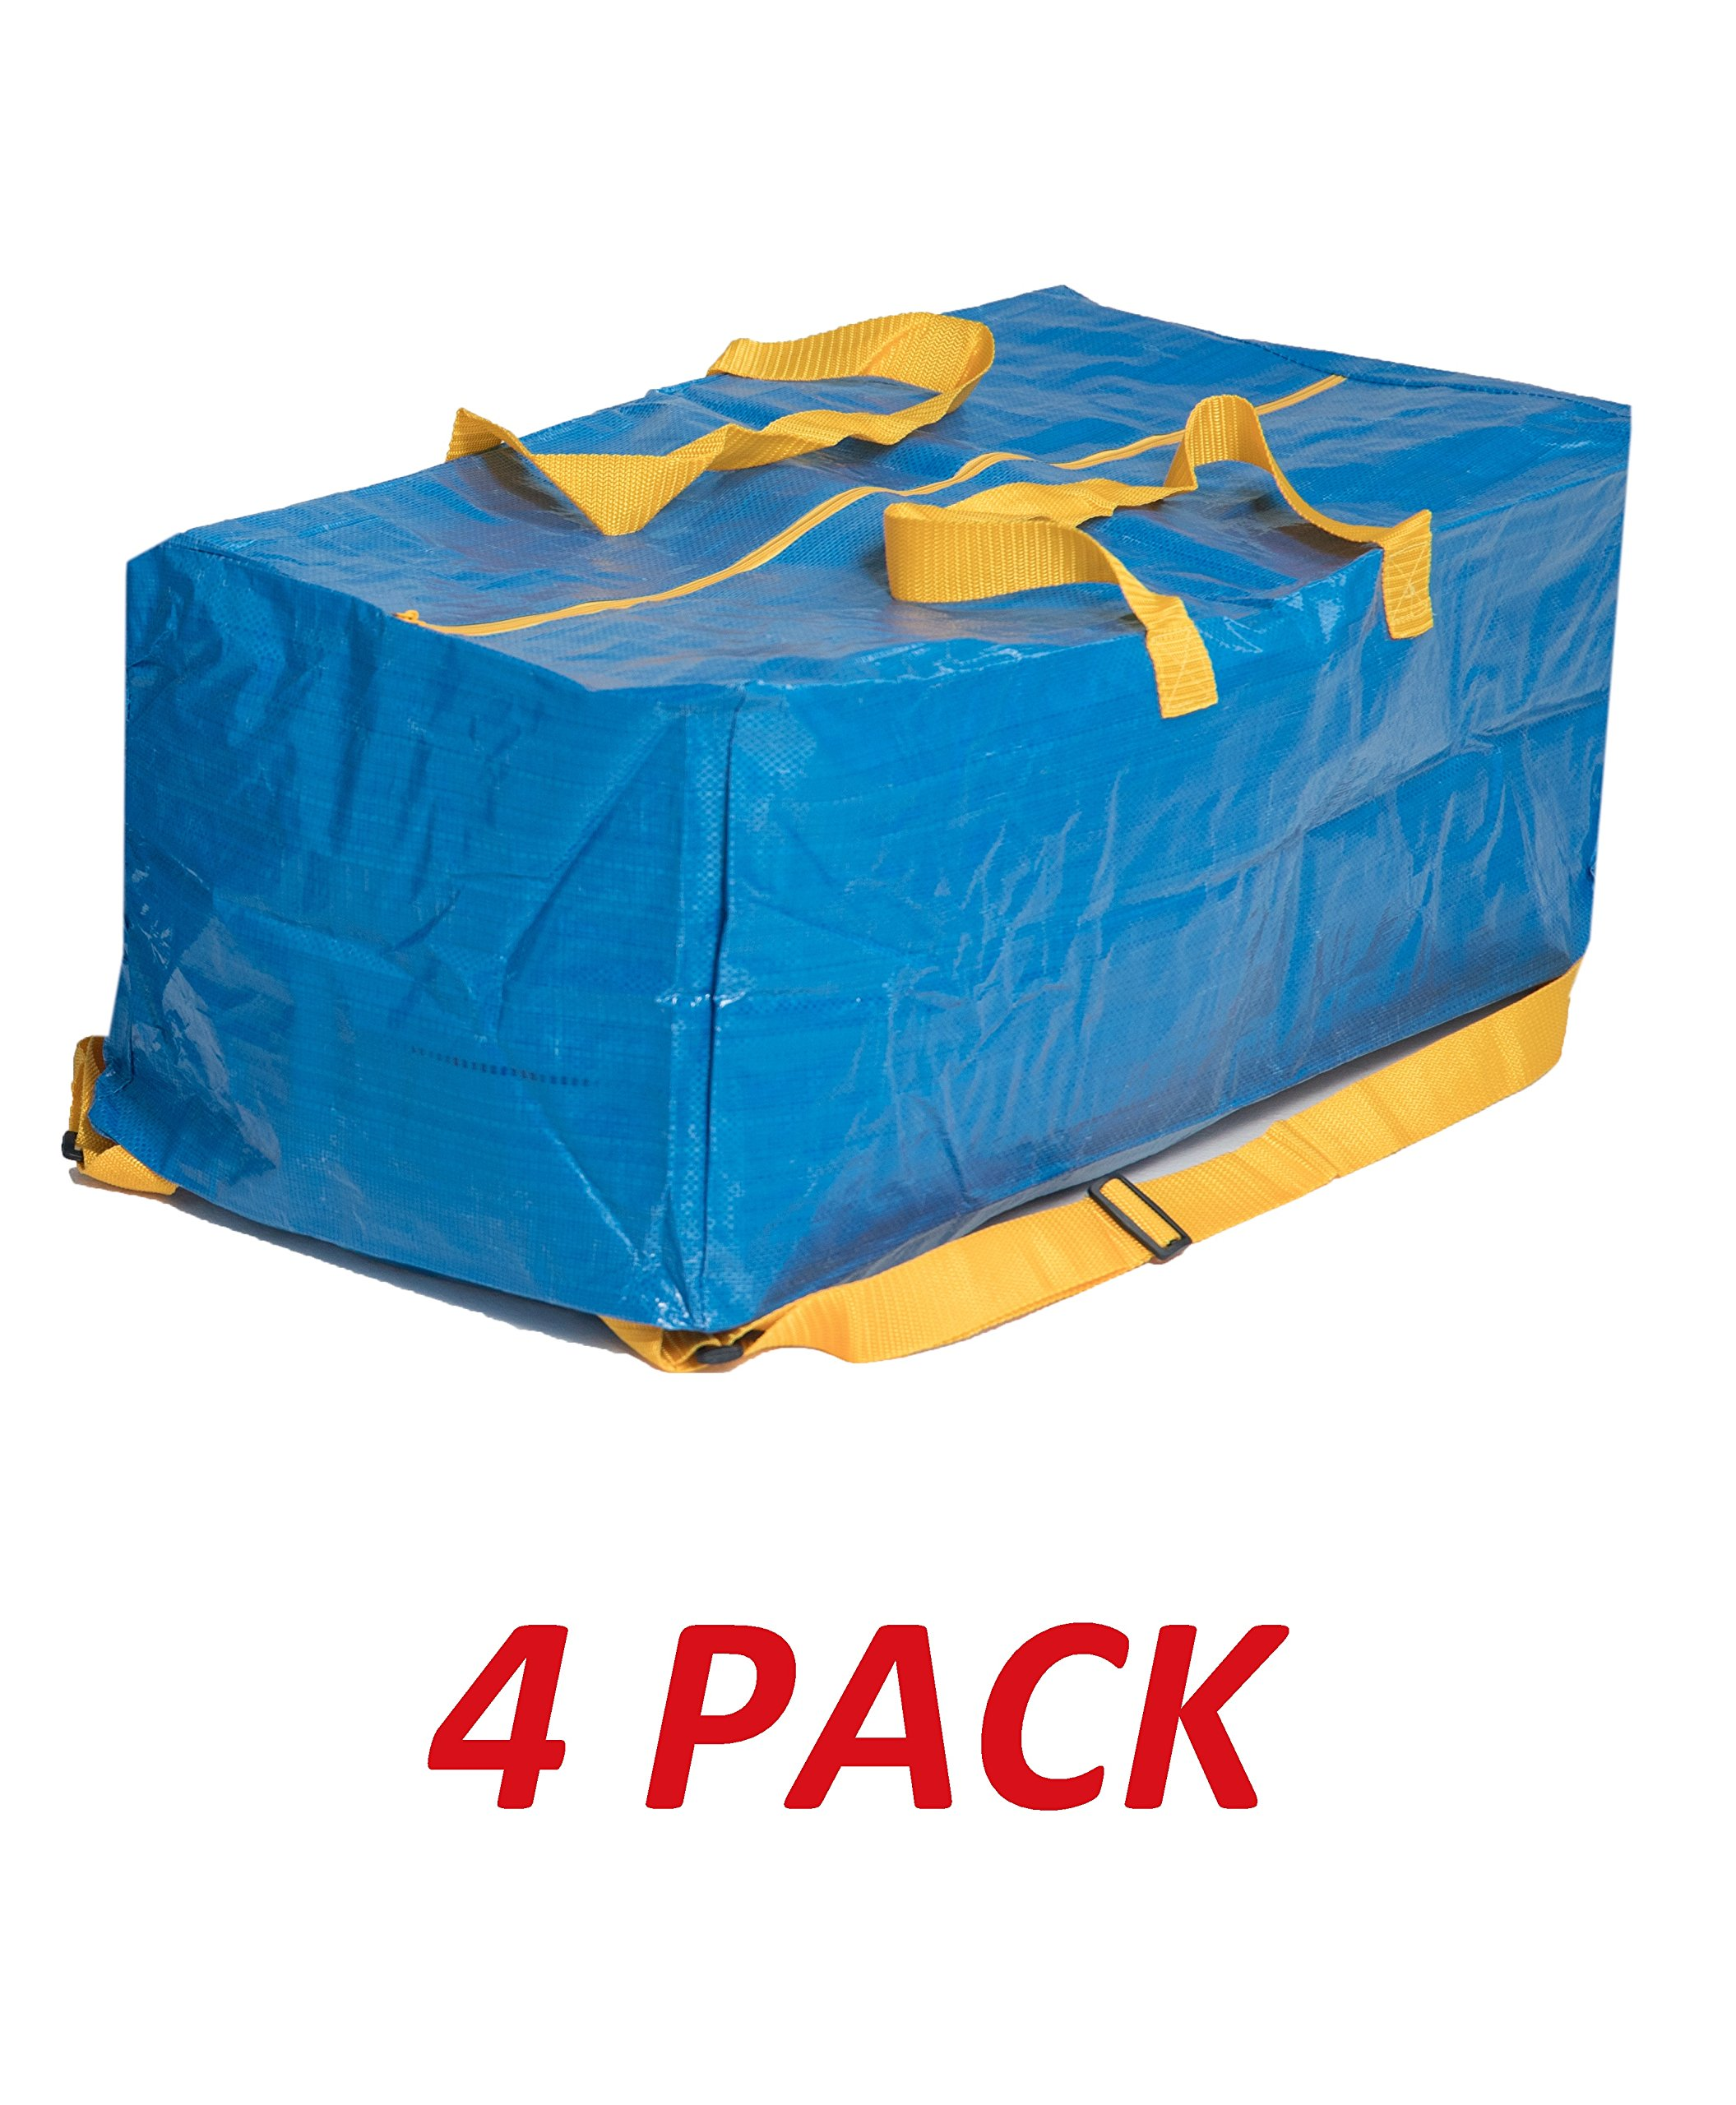 Klickpick Home Heavy Duty Reusable Extra Large Storage Bags -Pack of 4, Laundry Bag Shopping Moving Totes Bags Underbed Storage Bins Zipper -Backpack Handles,Compatible with IKEA FRAKTA CART- Blue by Klickpick Home (Image #1)